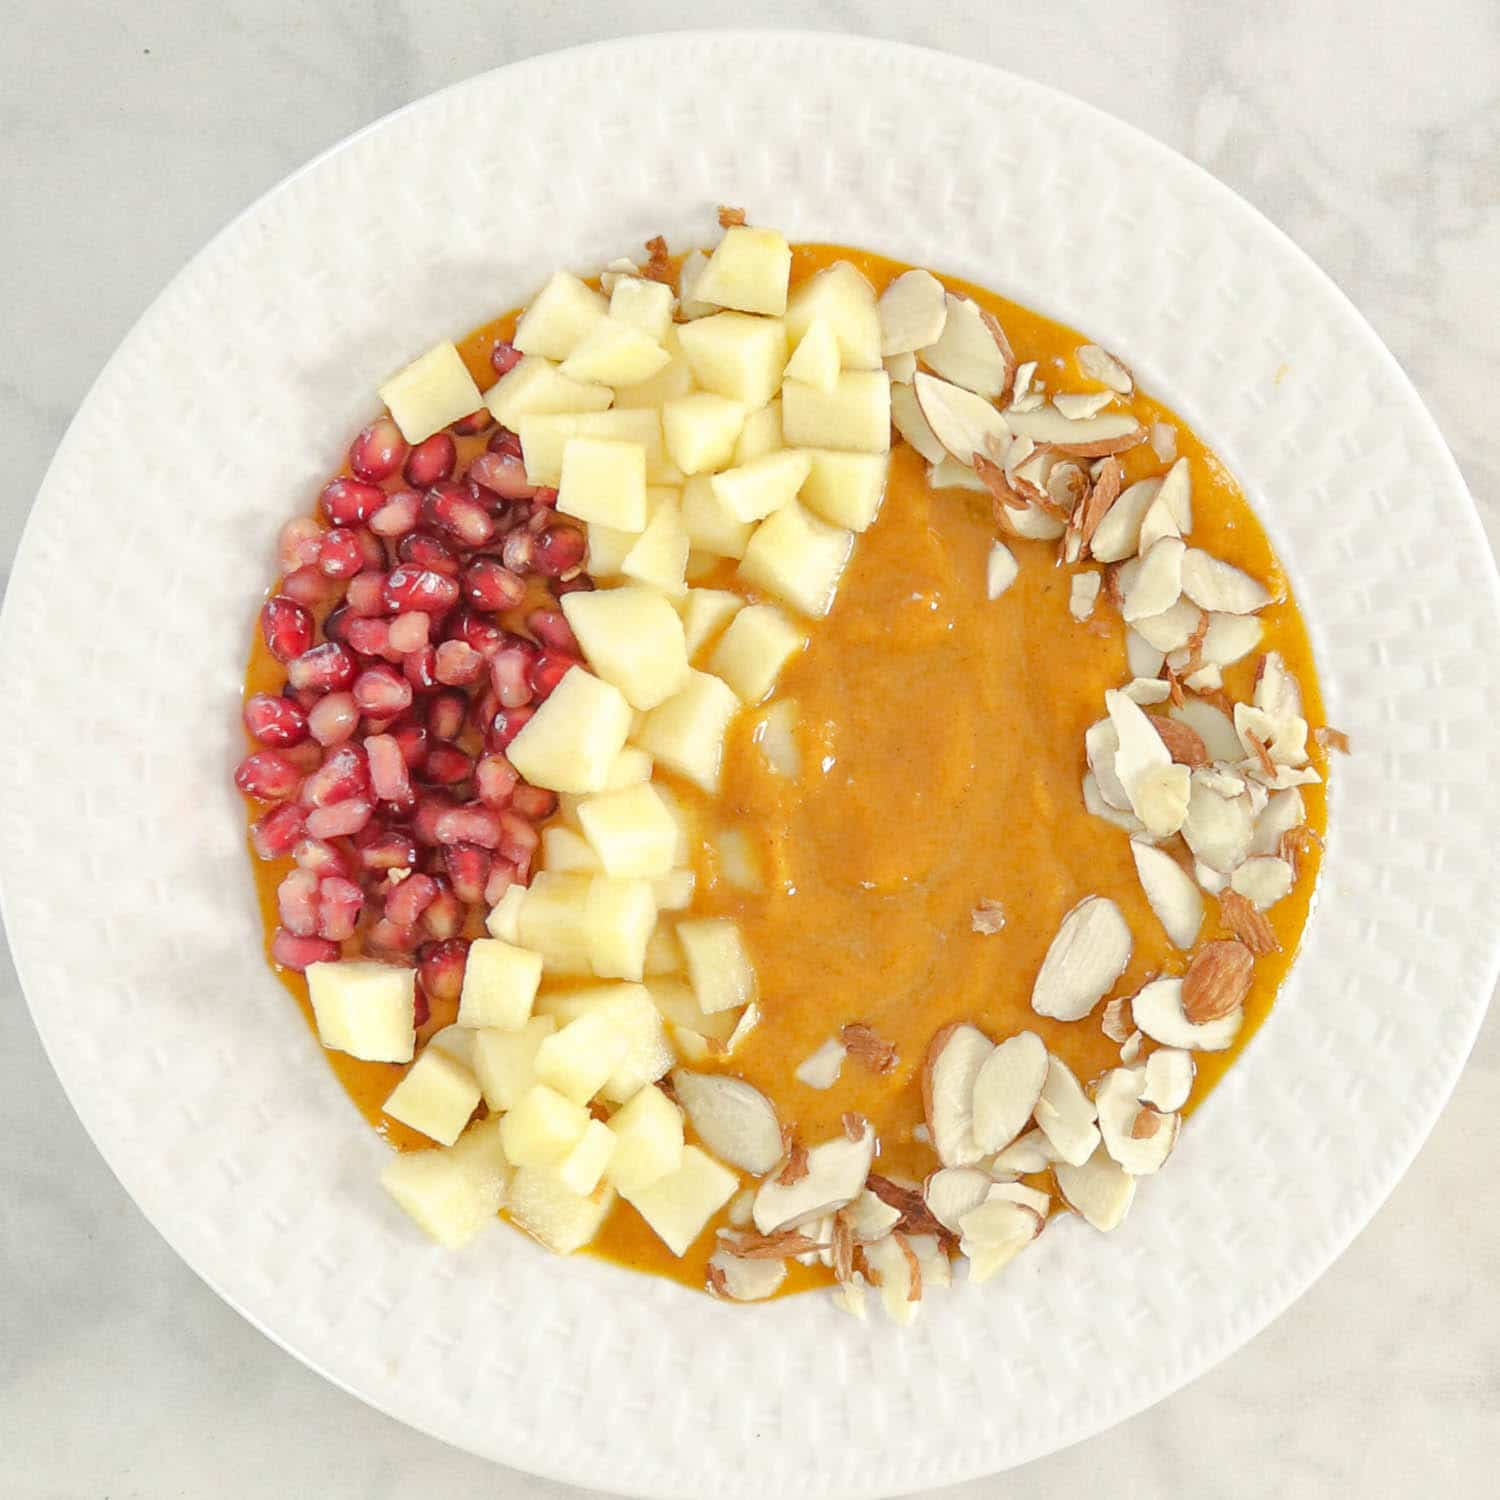 Pumpkin Smoothie in a bowl topped with fruits and nuts